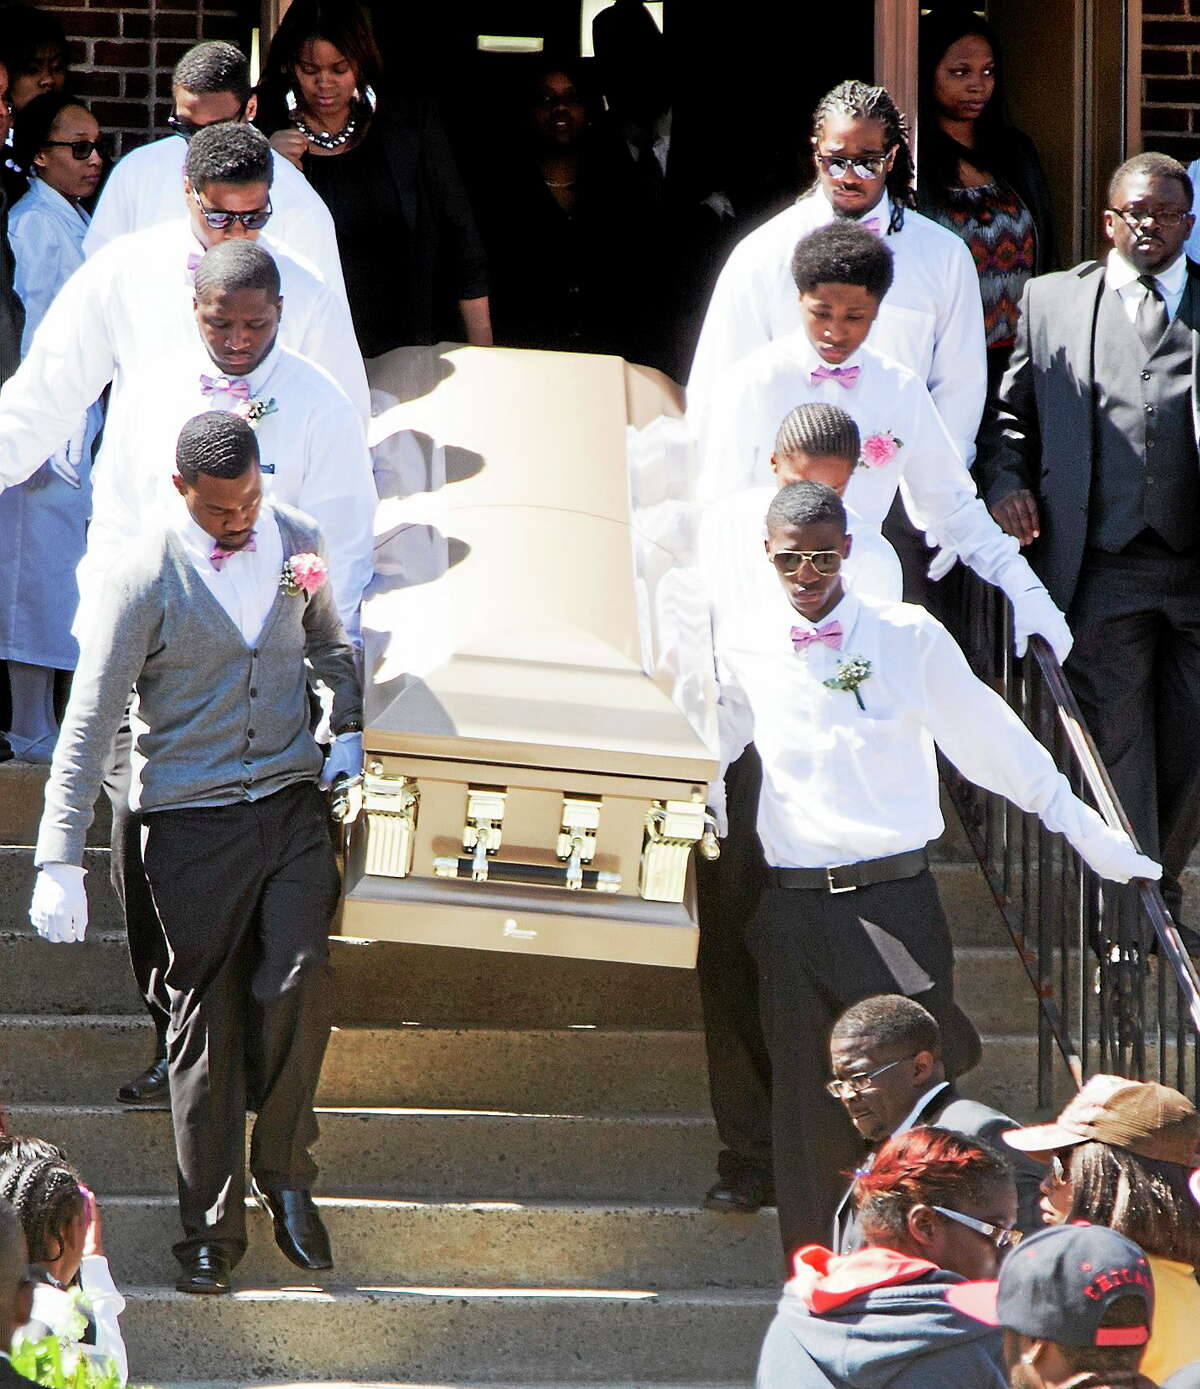 Hundreds attend the funeral for 16-year-old homicide victim Torrence Gamble Jr. at St. Matthews Unison Free Will Baptist Church Thursday morning in New Haven.